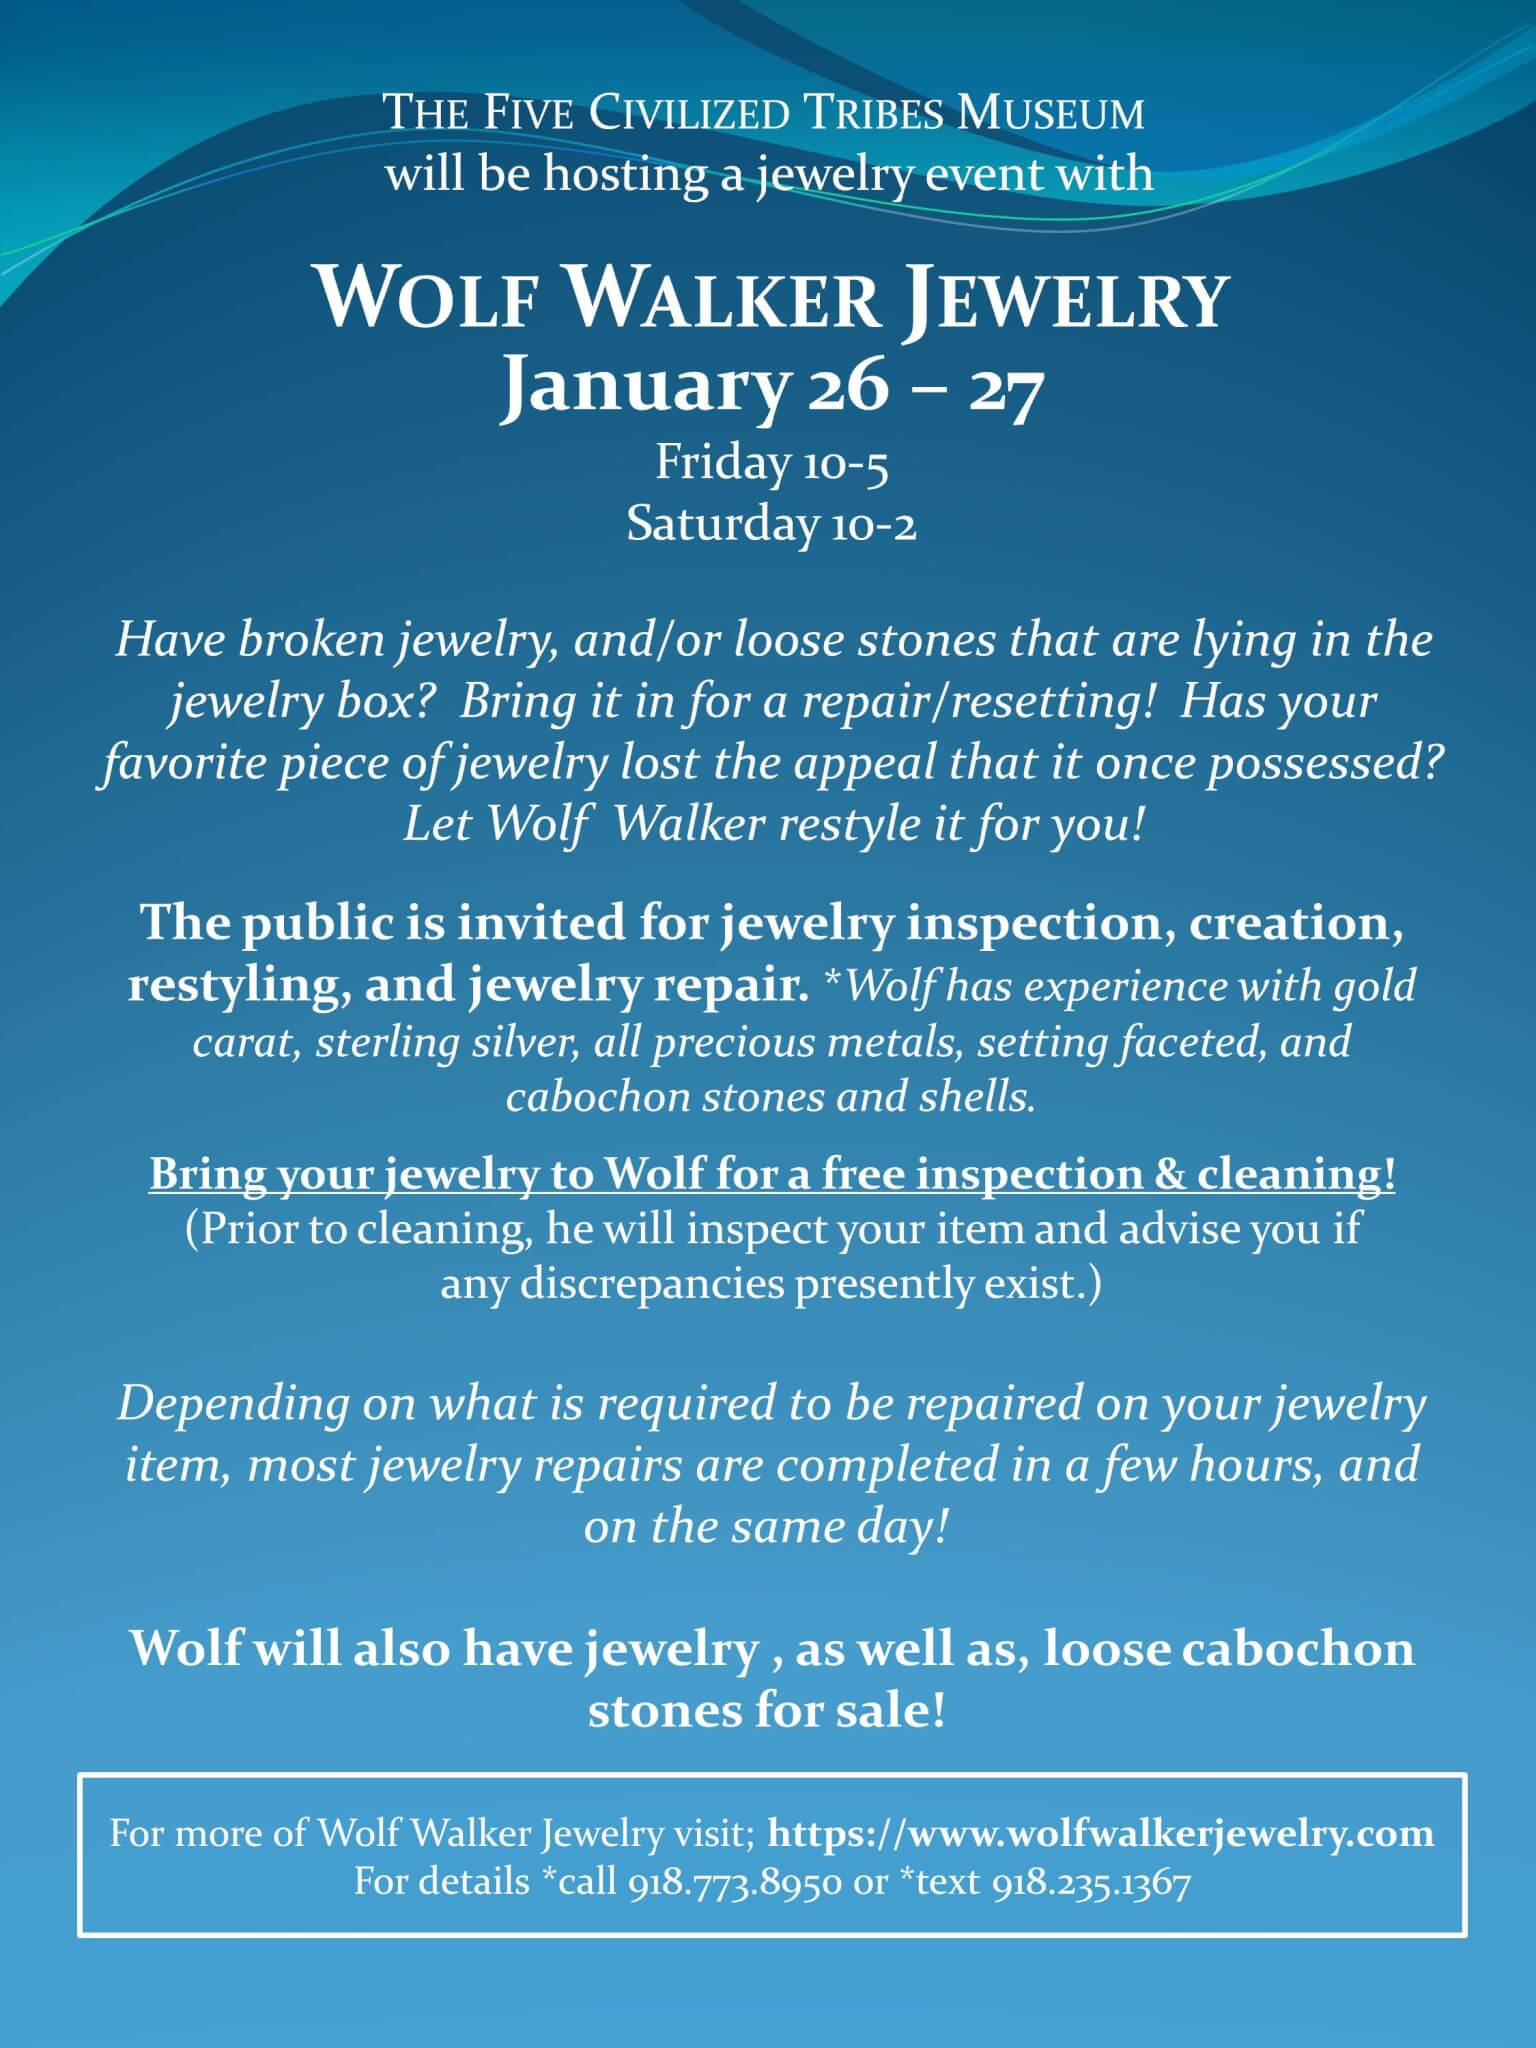 Wolf Walker Jewelry Event Muskogee Chamber Of Commerce